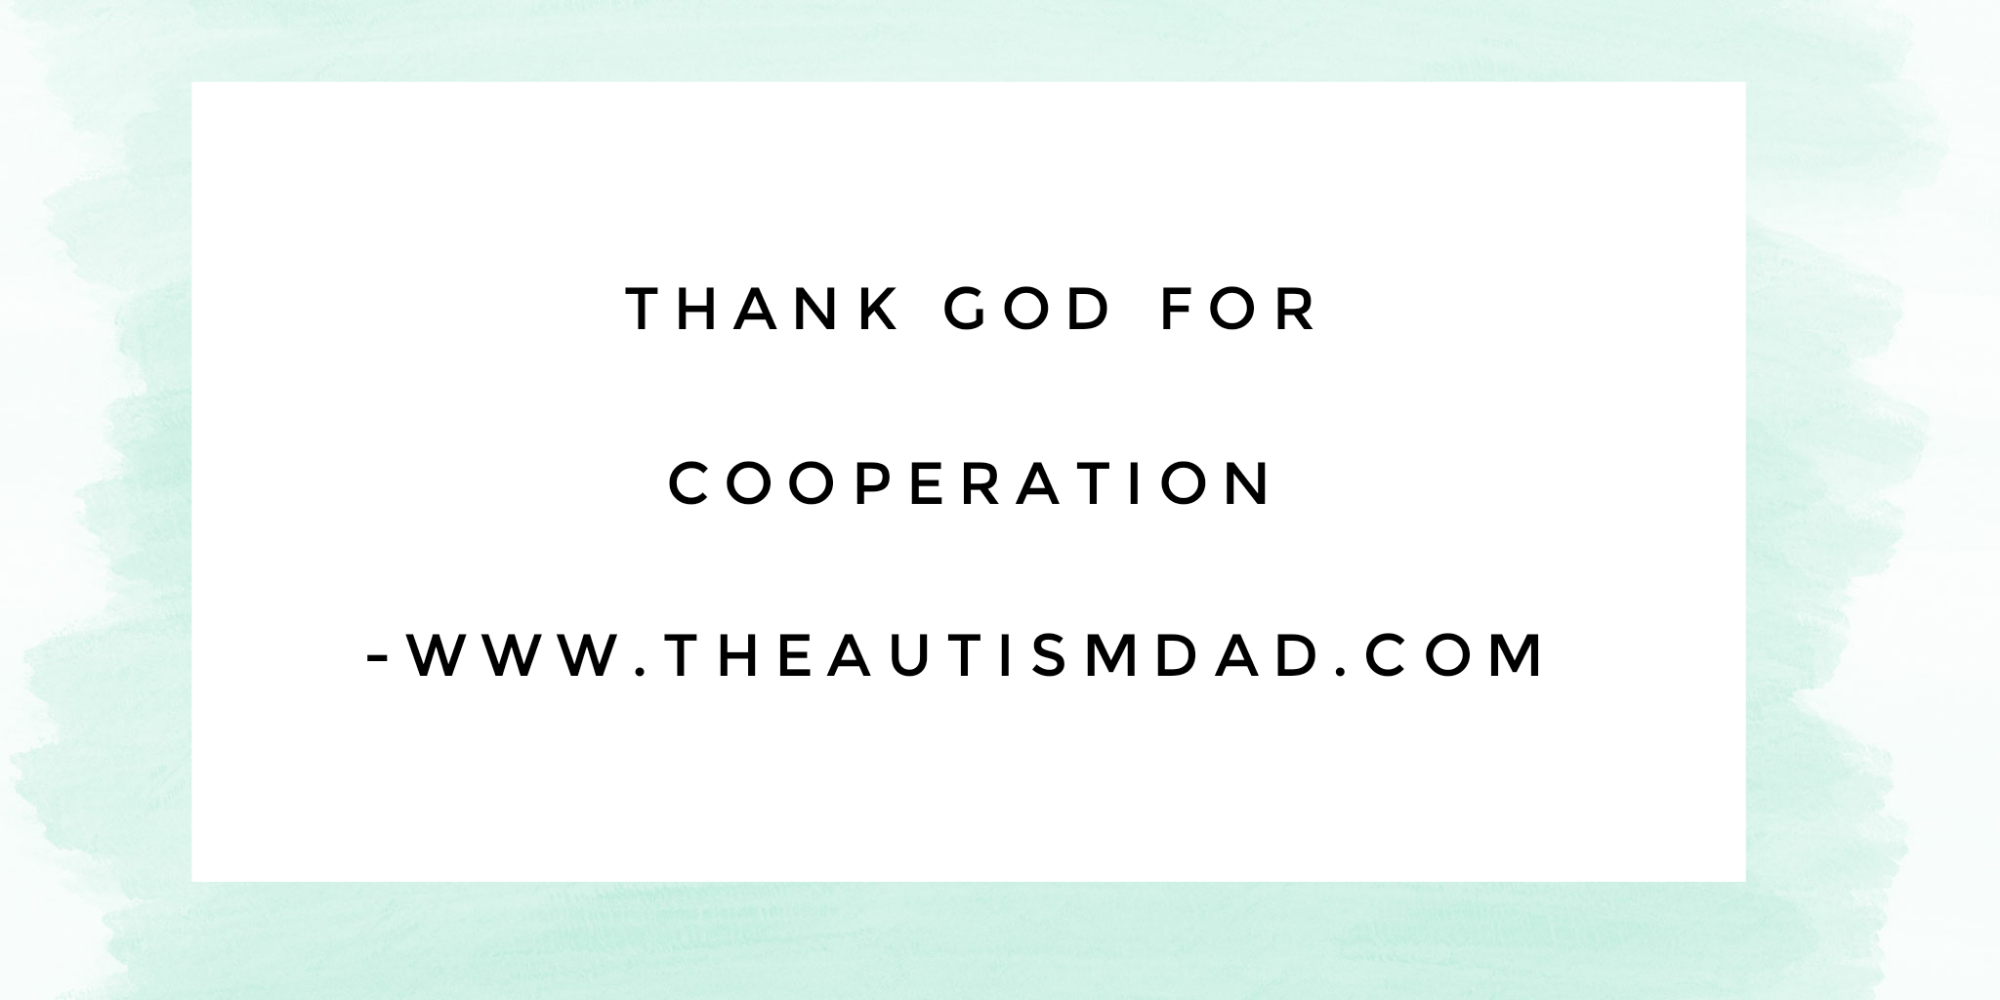 Thank God for cooperation